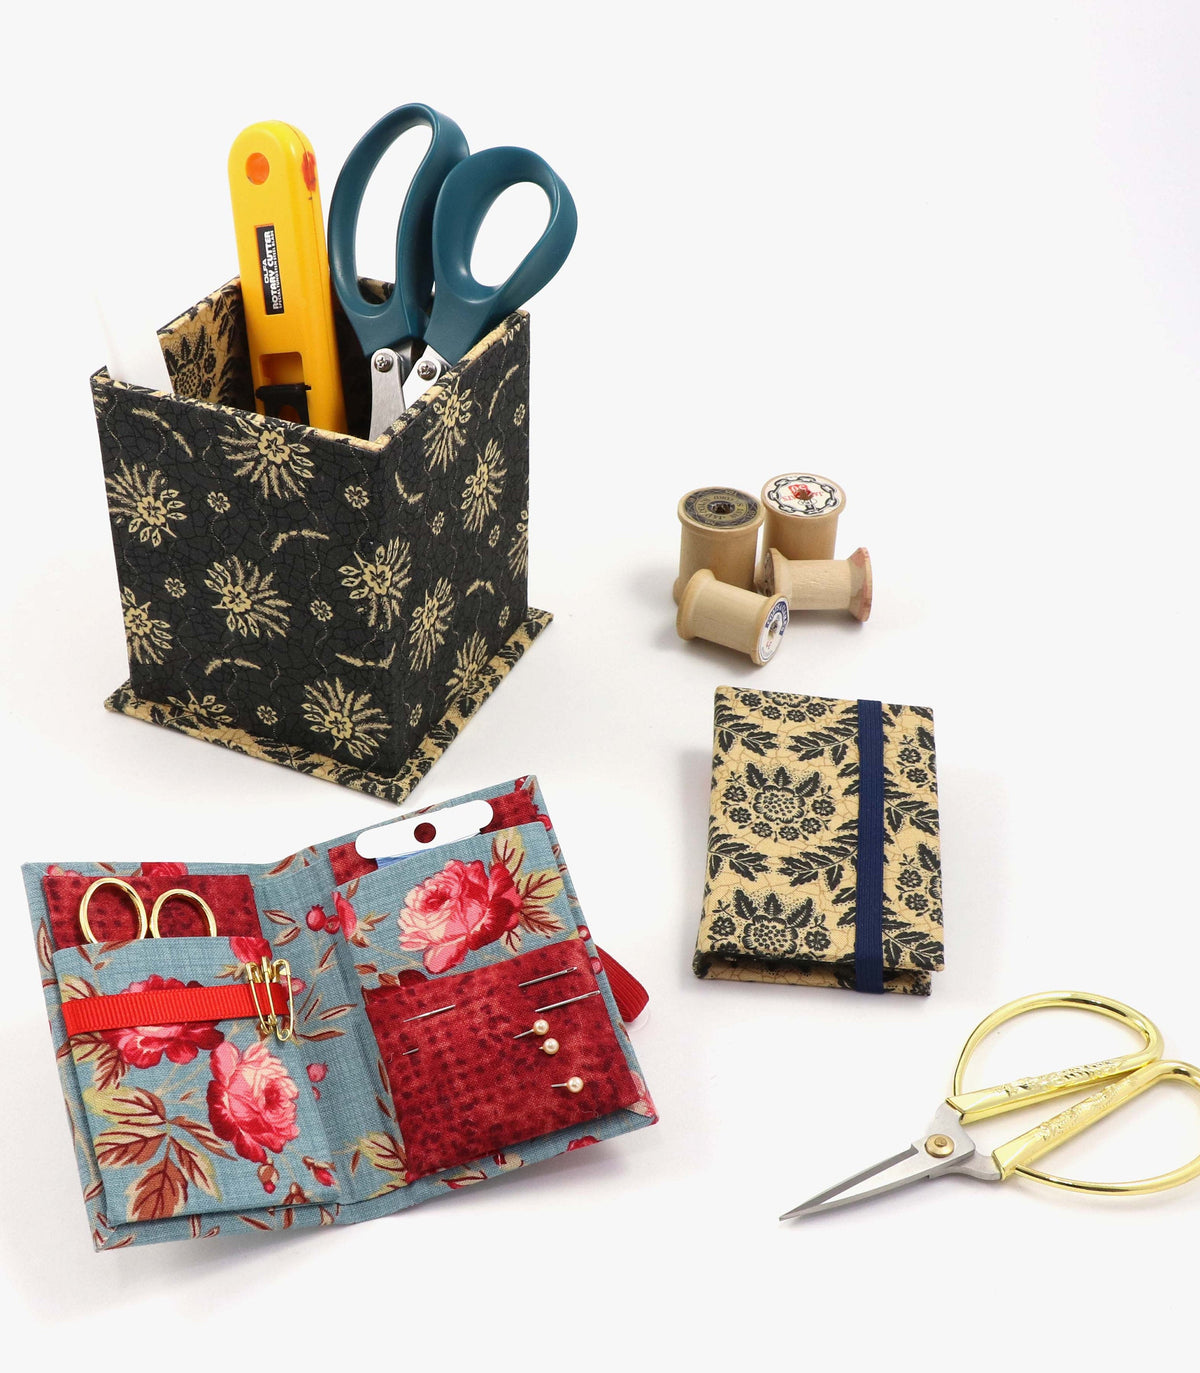 Cartonnage starter kit_ tools and DIY kits - Colorway Arts